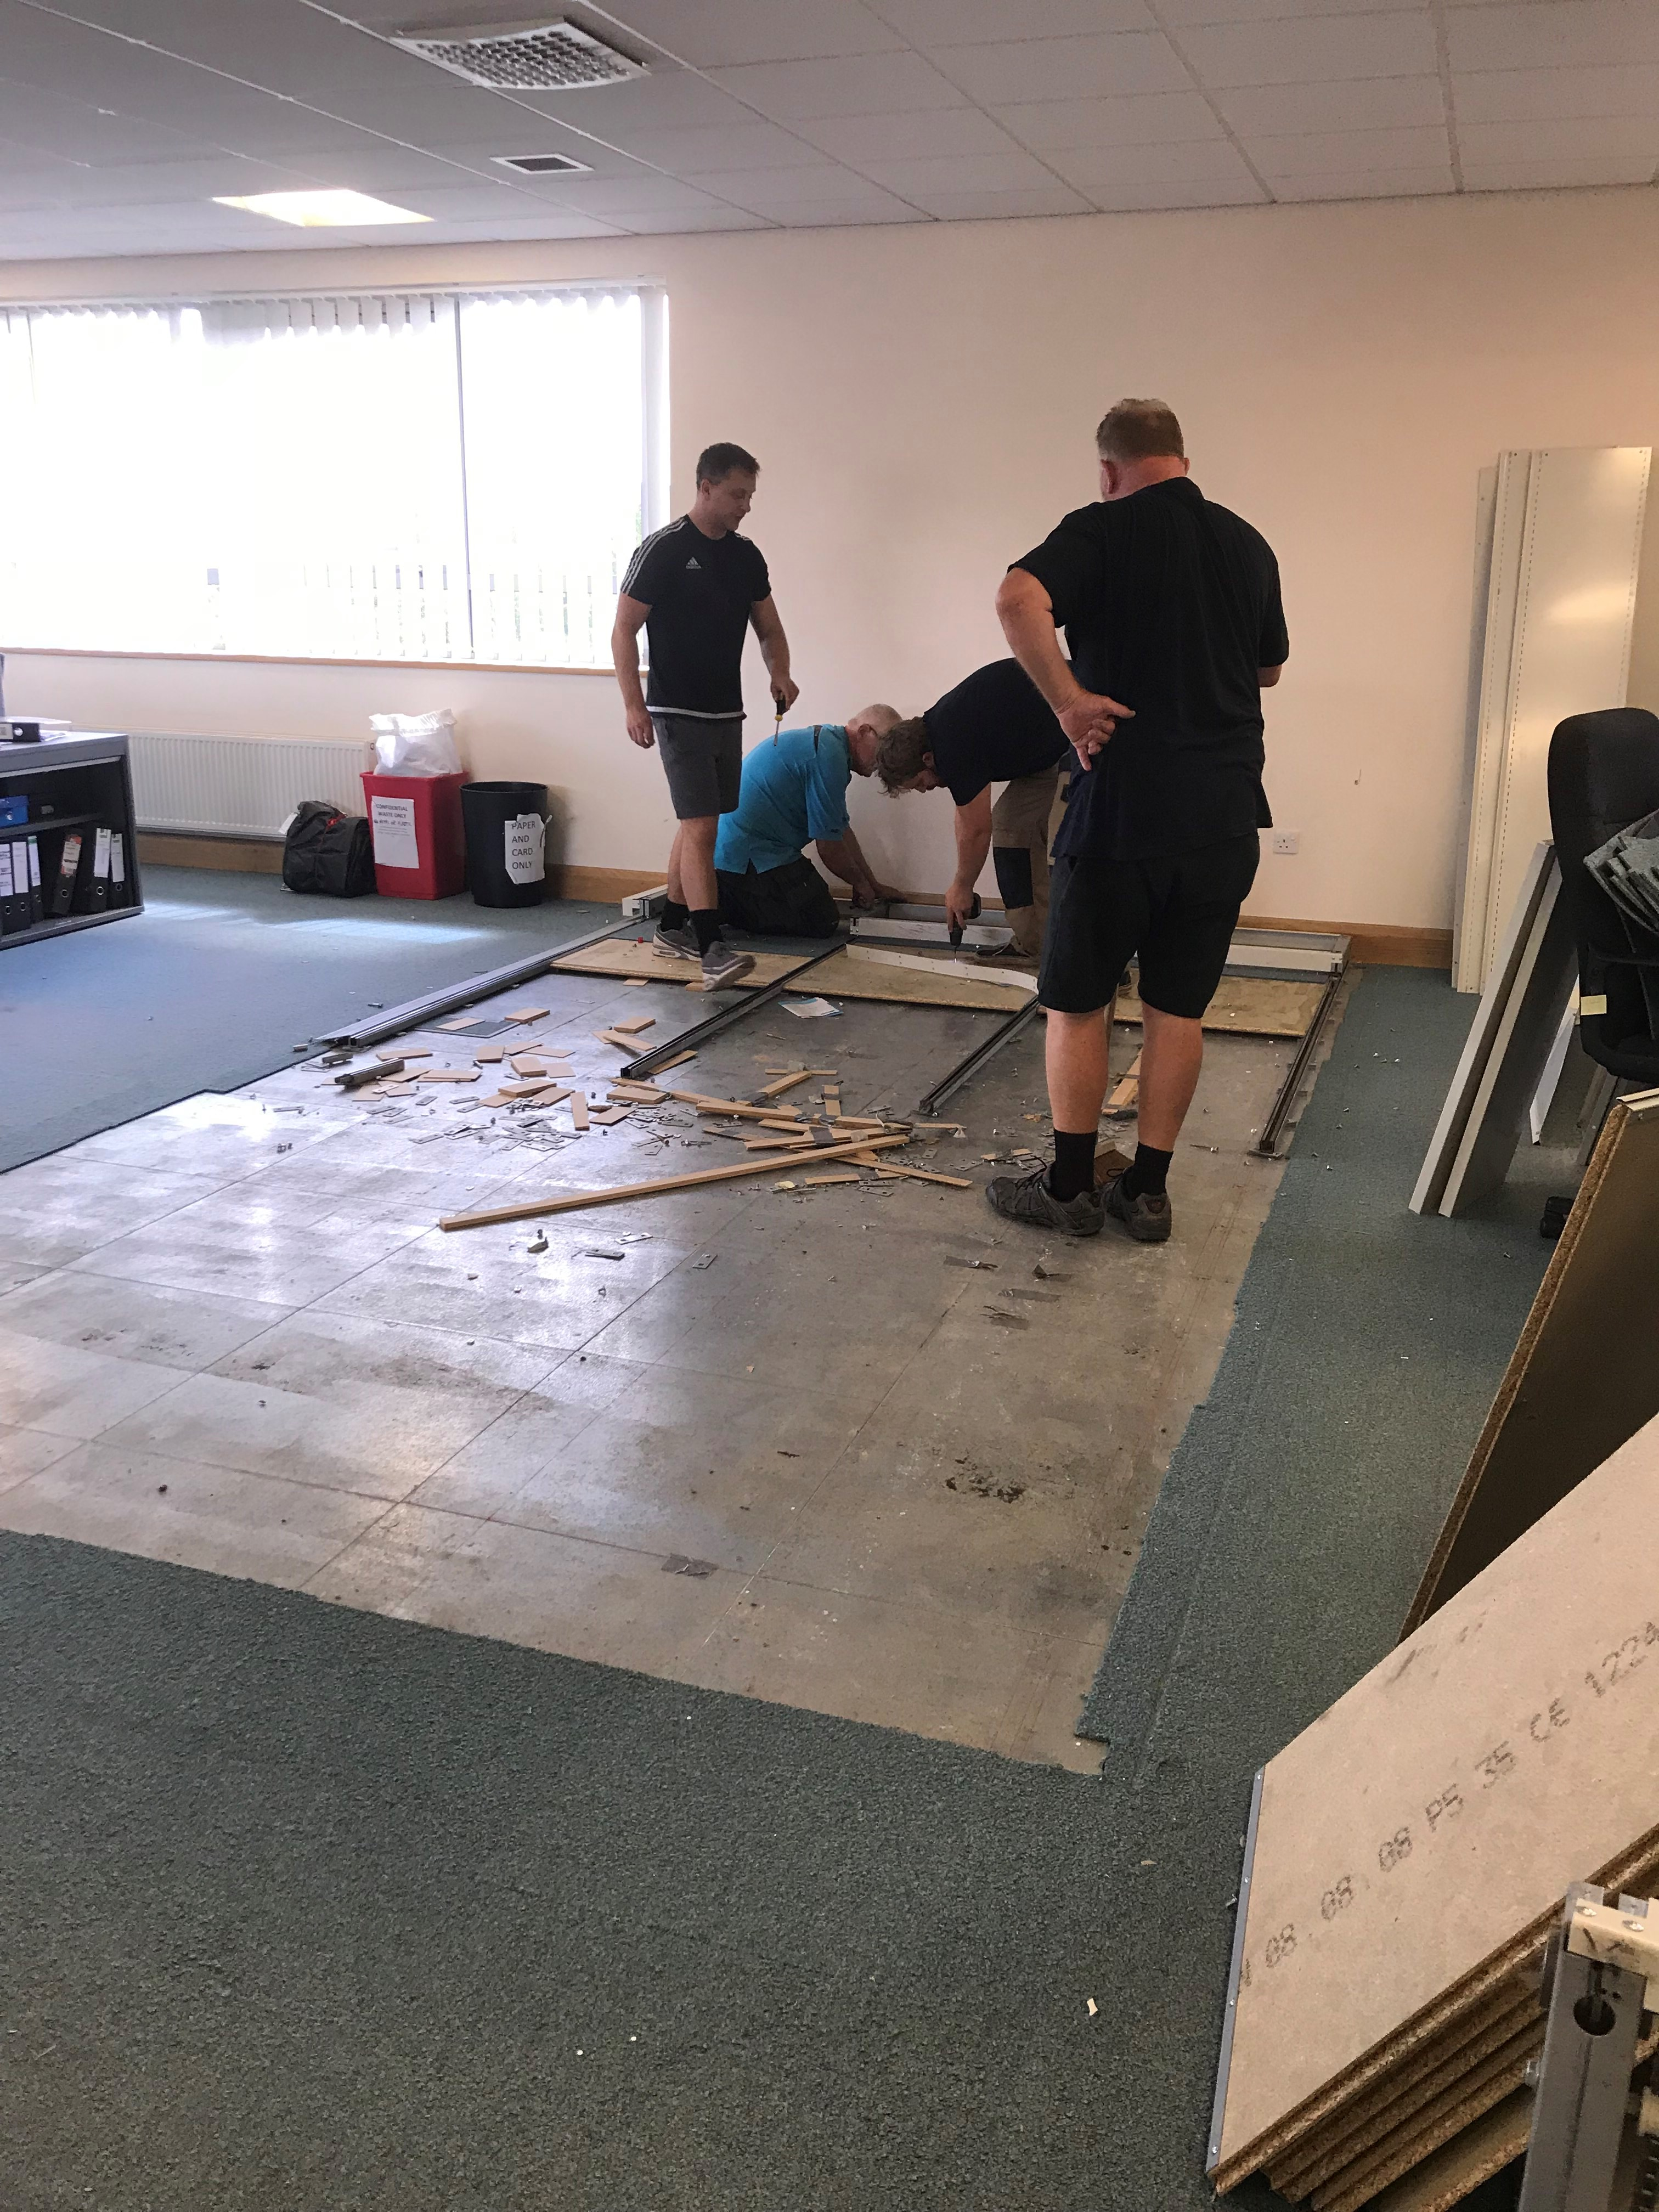 Office cleared of the large filing cabinets - workmen removing the remains